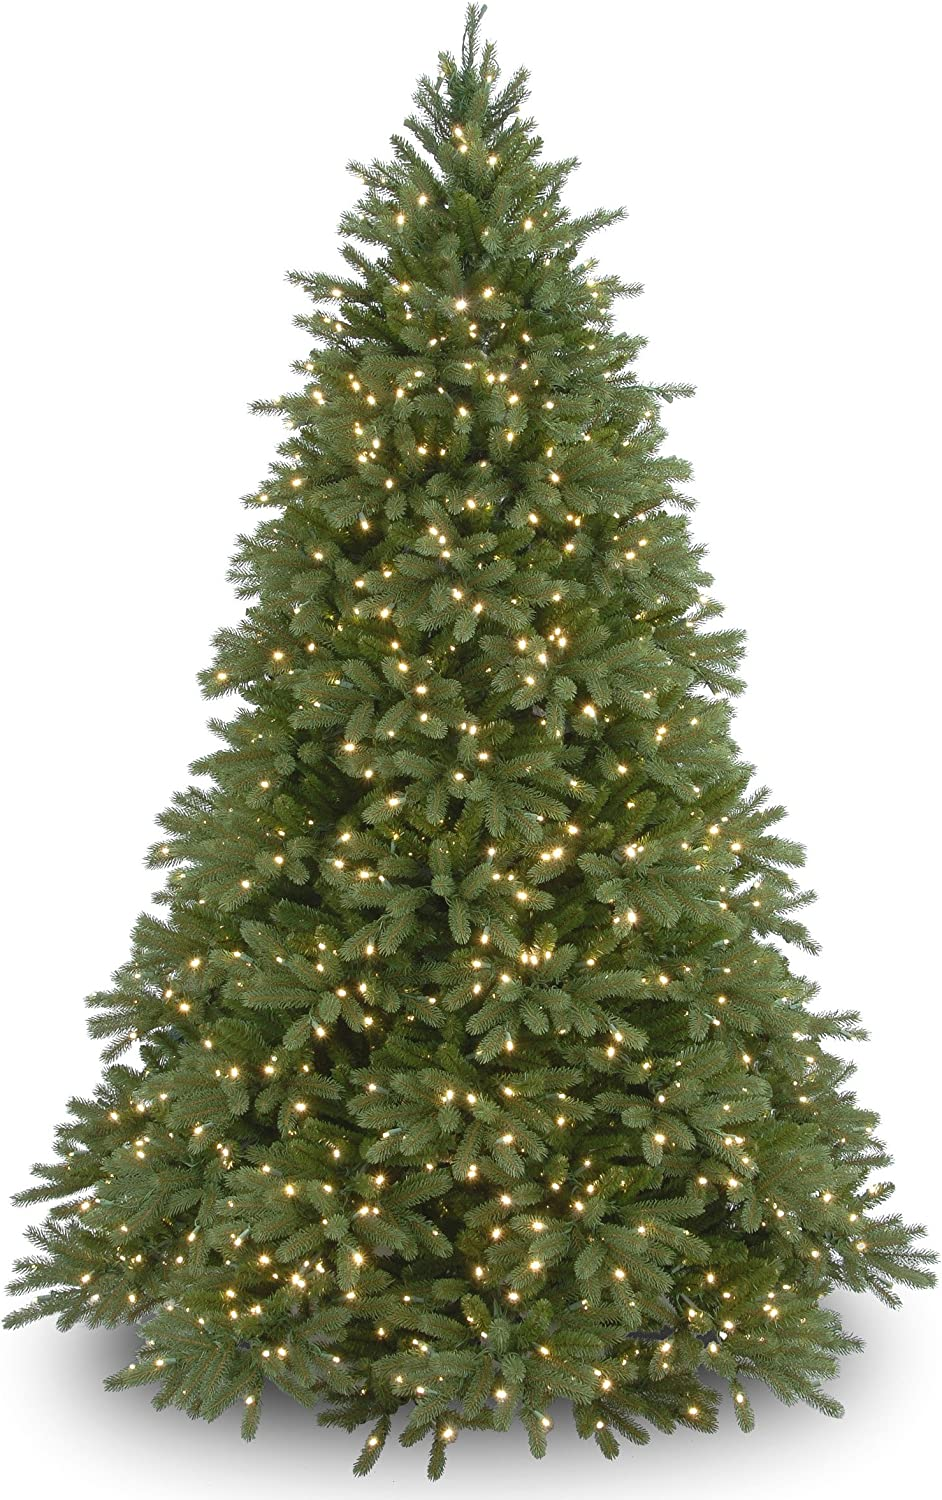 National Tree Company 'Feel Real' Pre-lit Artificial Christmas Tree   Includes Pre-strung White Lights and Stand   Jersey Fraser Fir - 6.5 ft